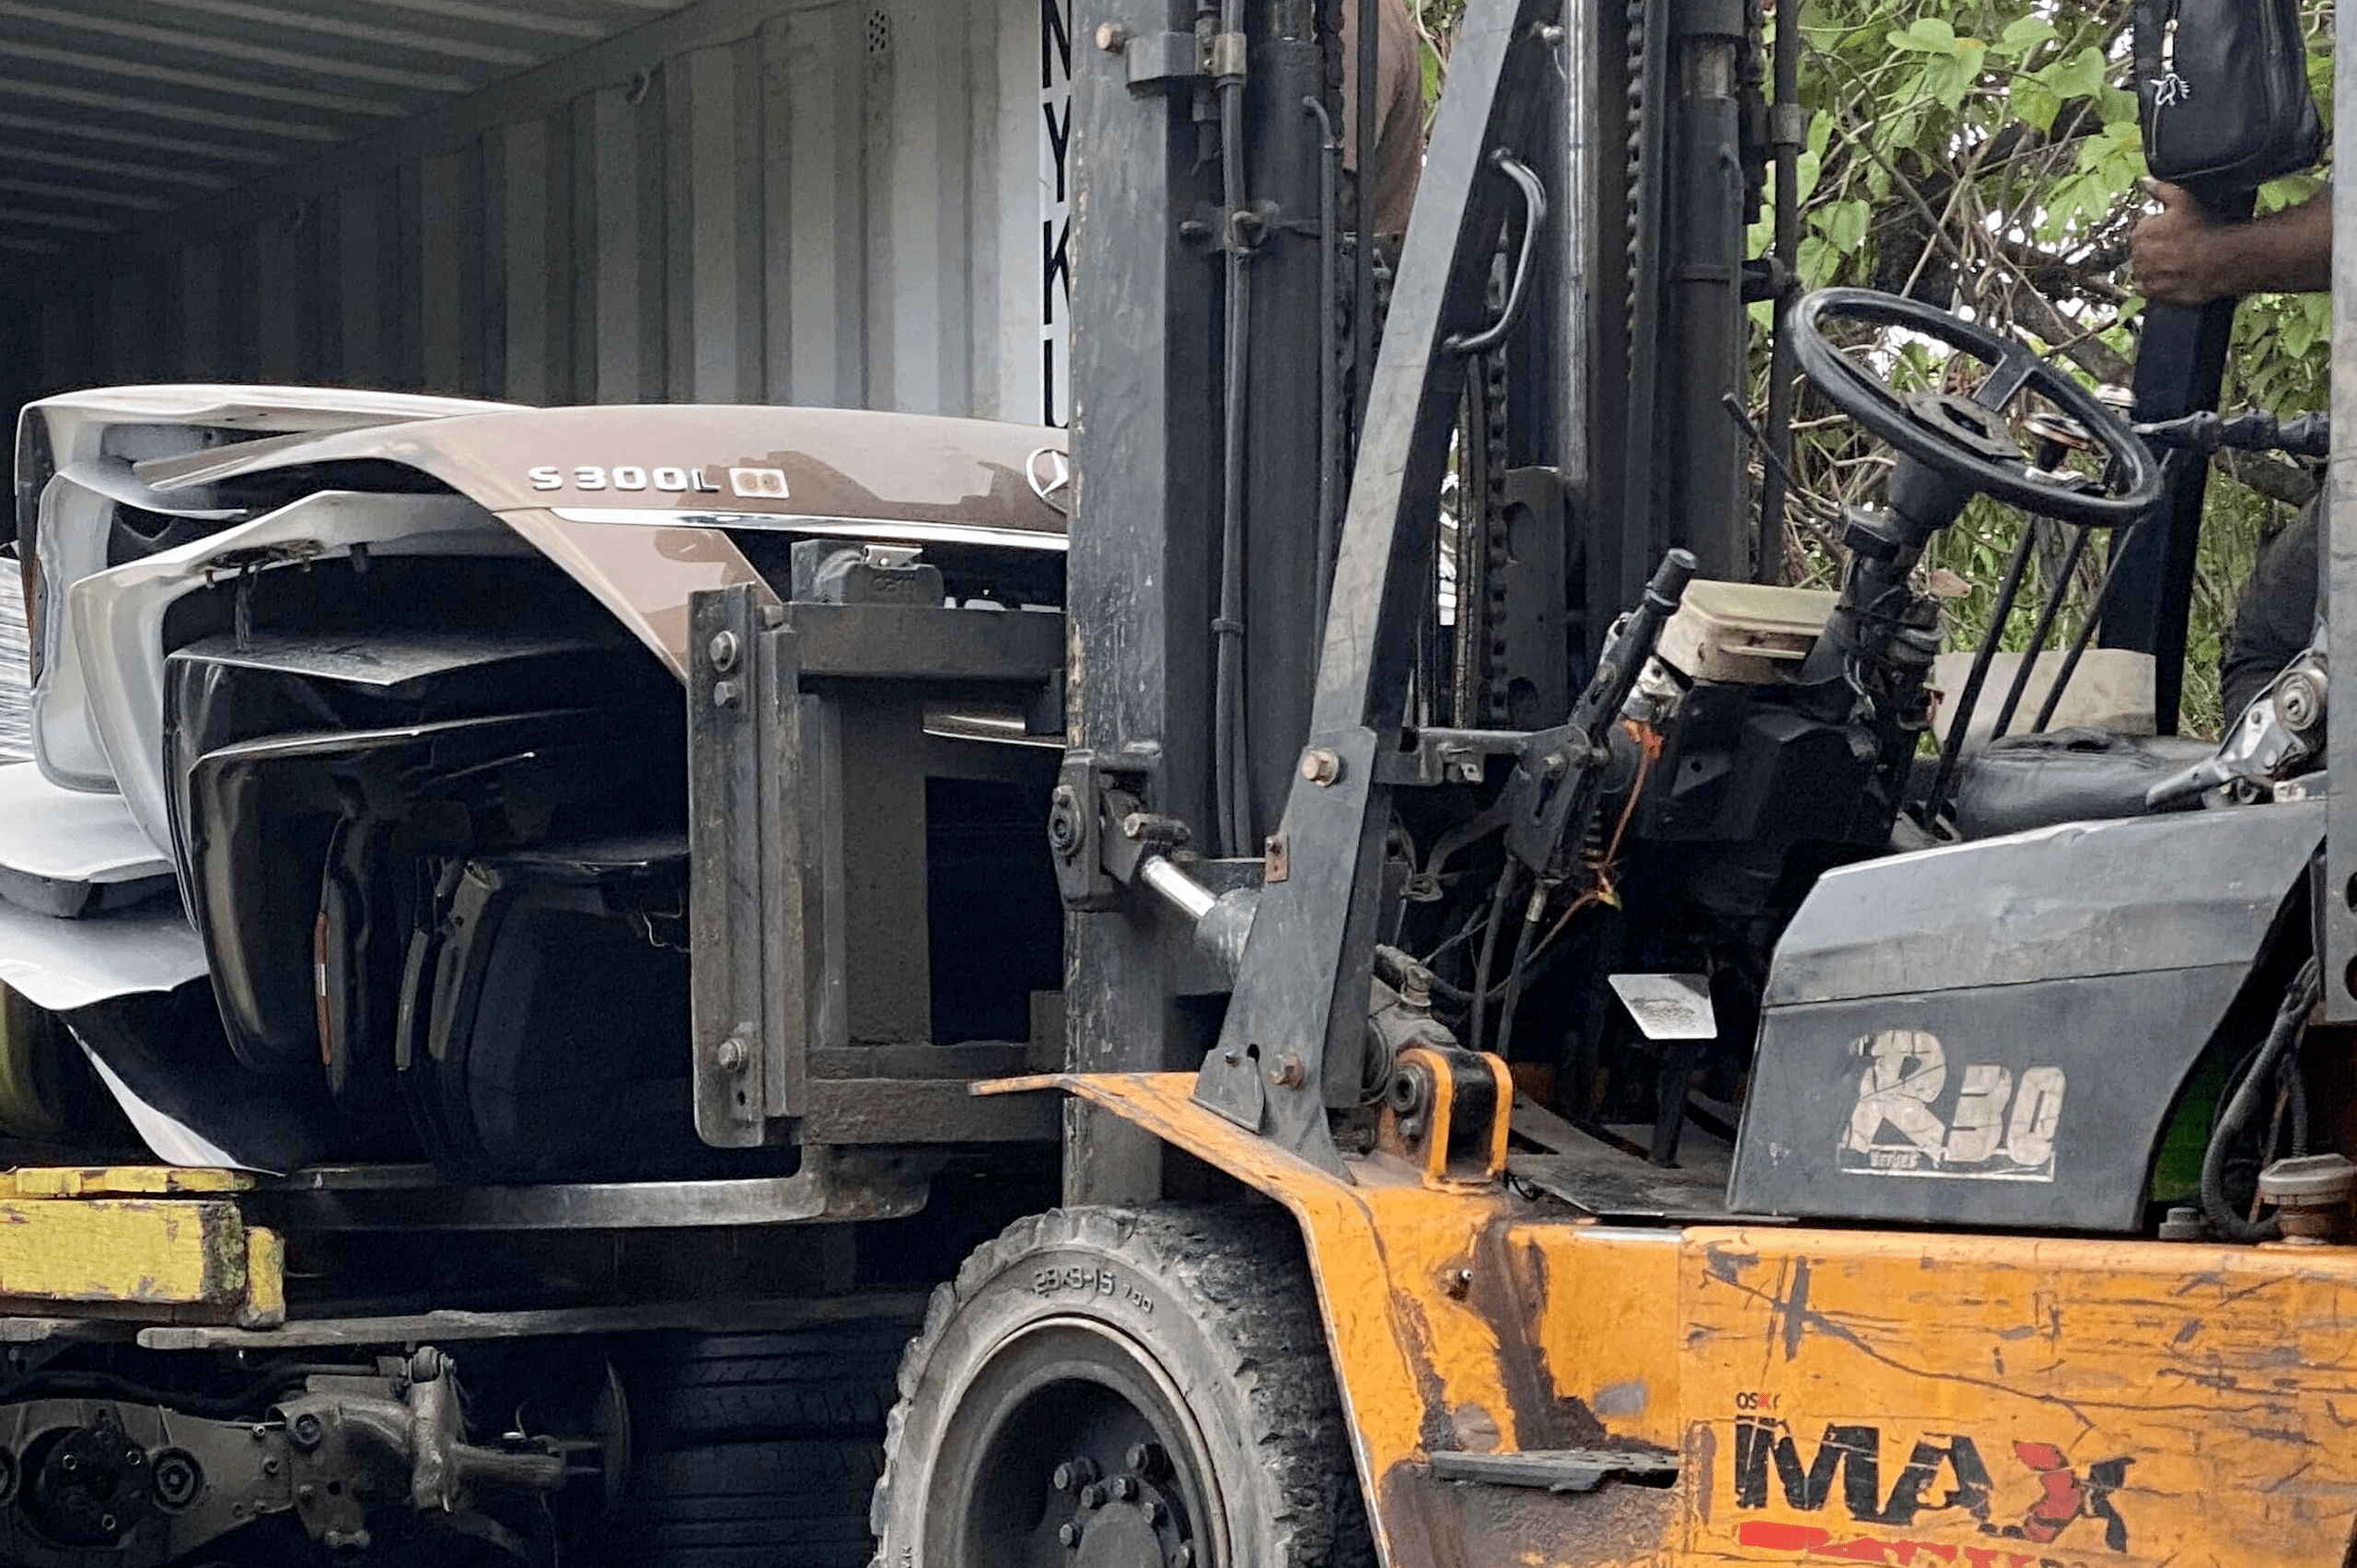 forklift lifting scrapped car parts into container